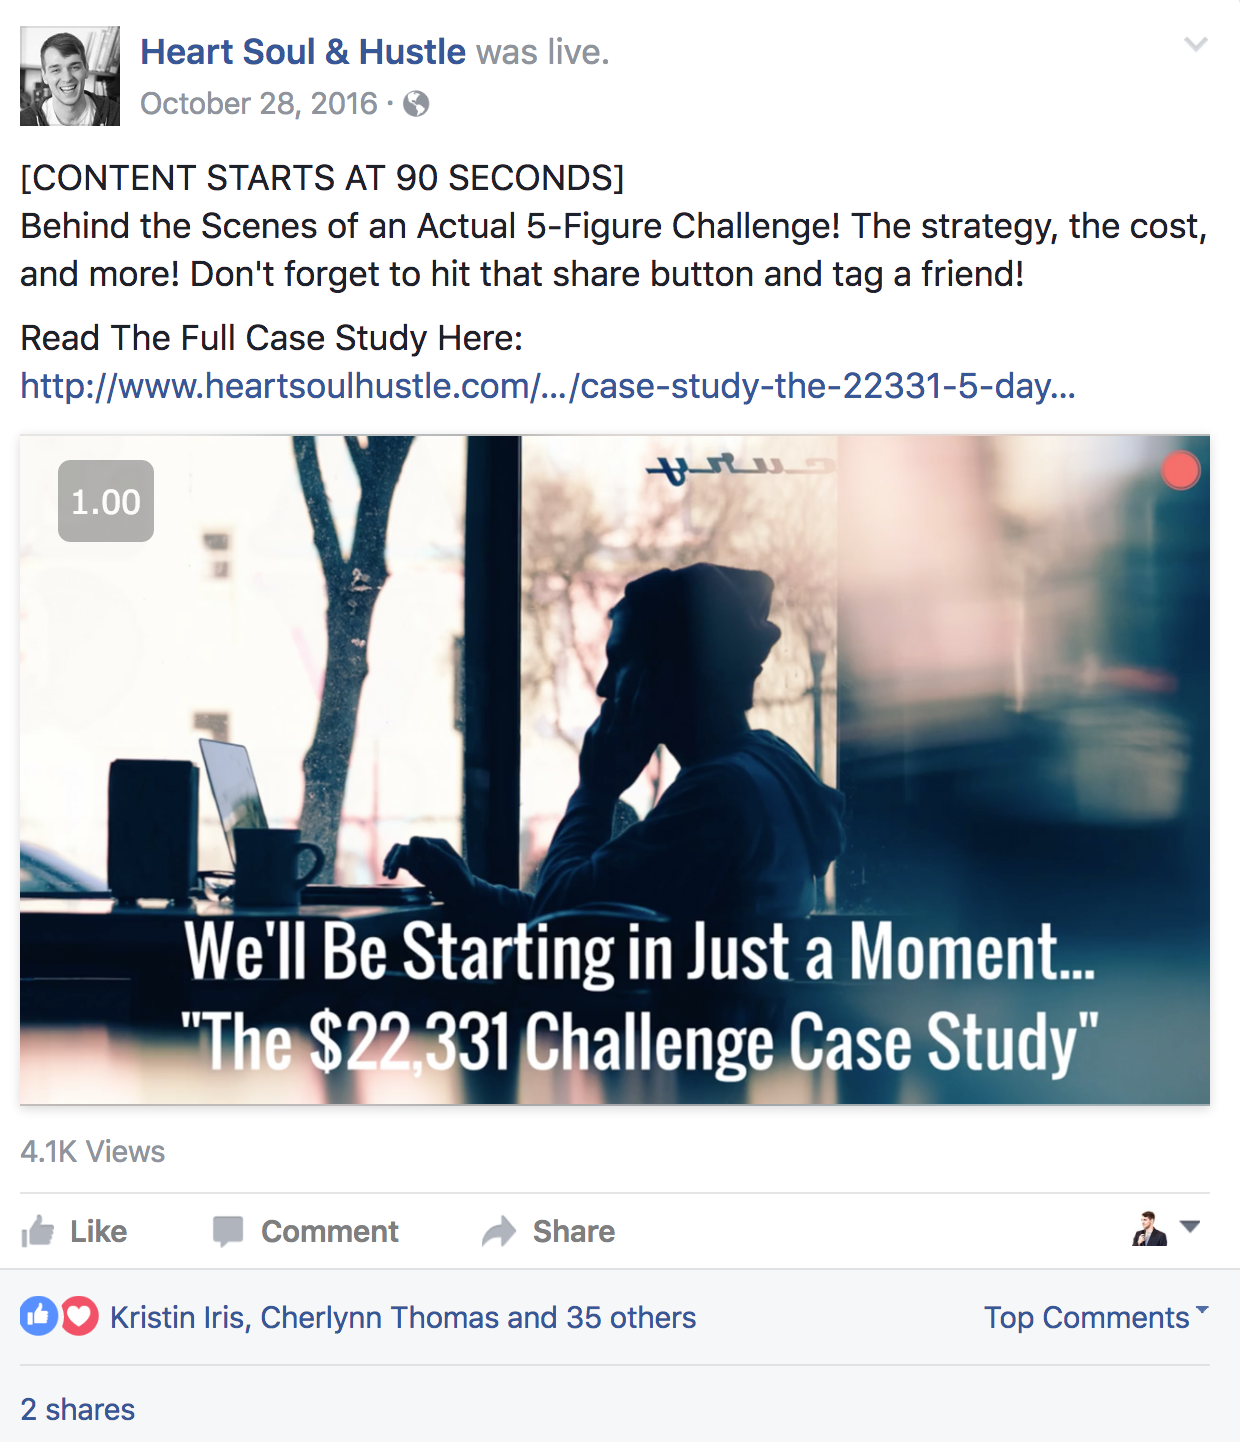 Notice how I've used this Facebook Live to drive traffic back to a high quality blog post with the intention of generating more leads!